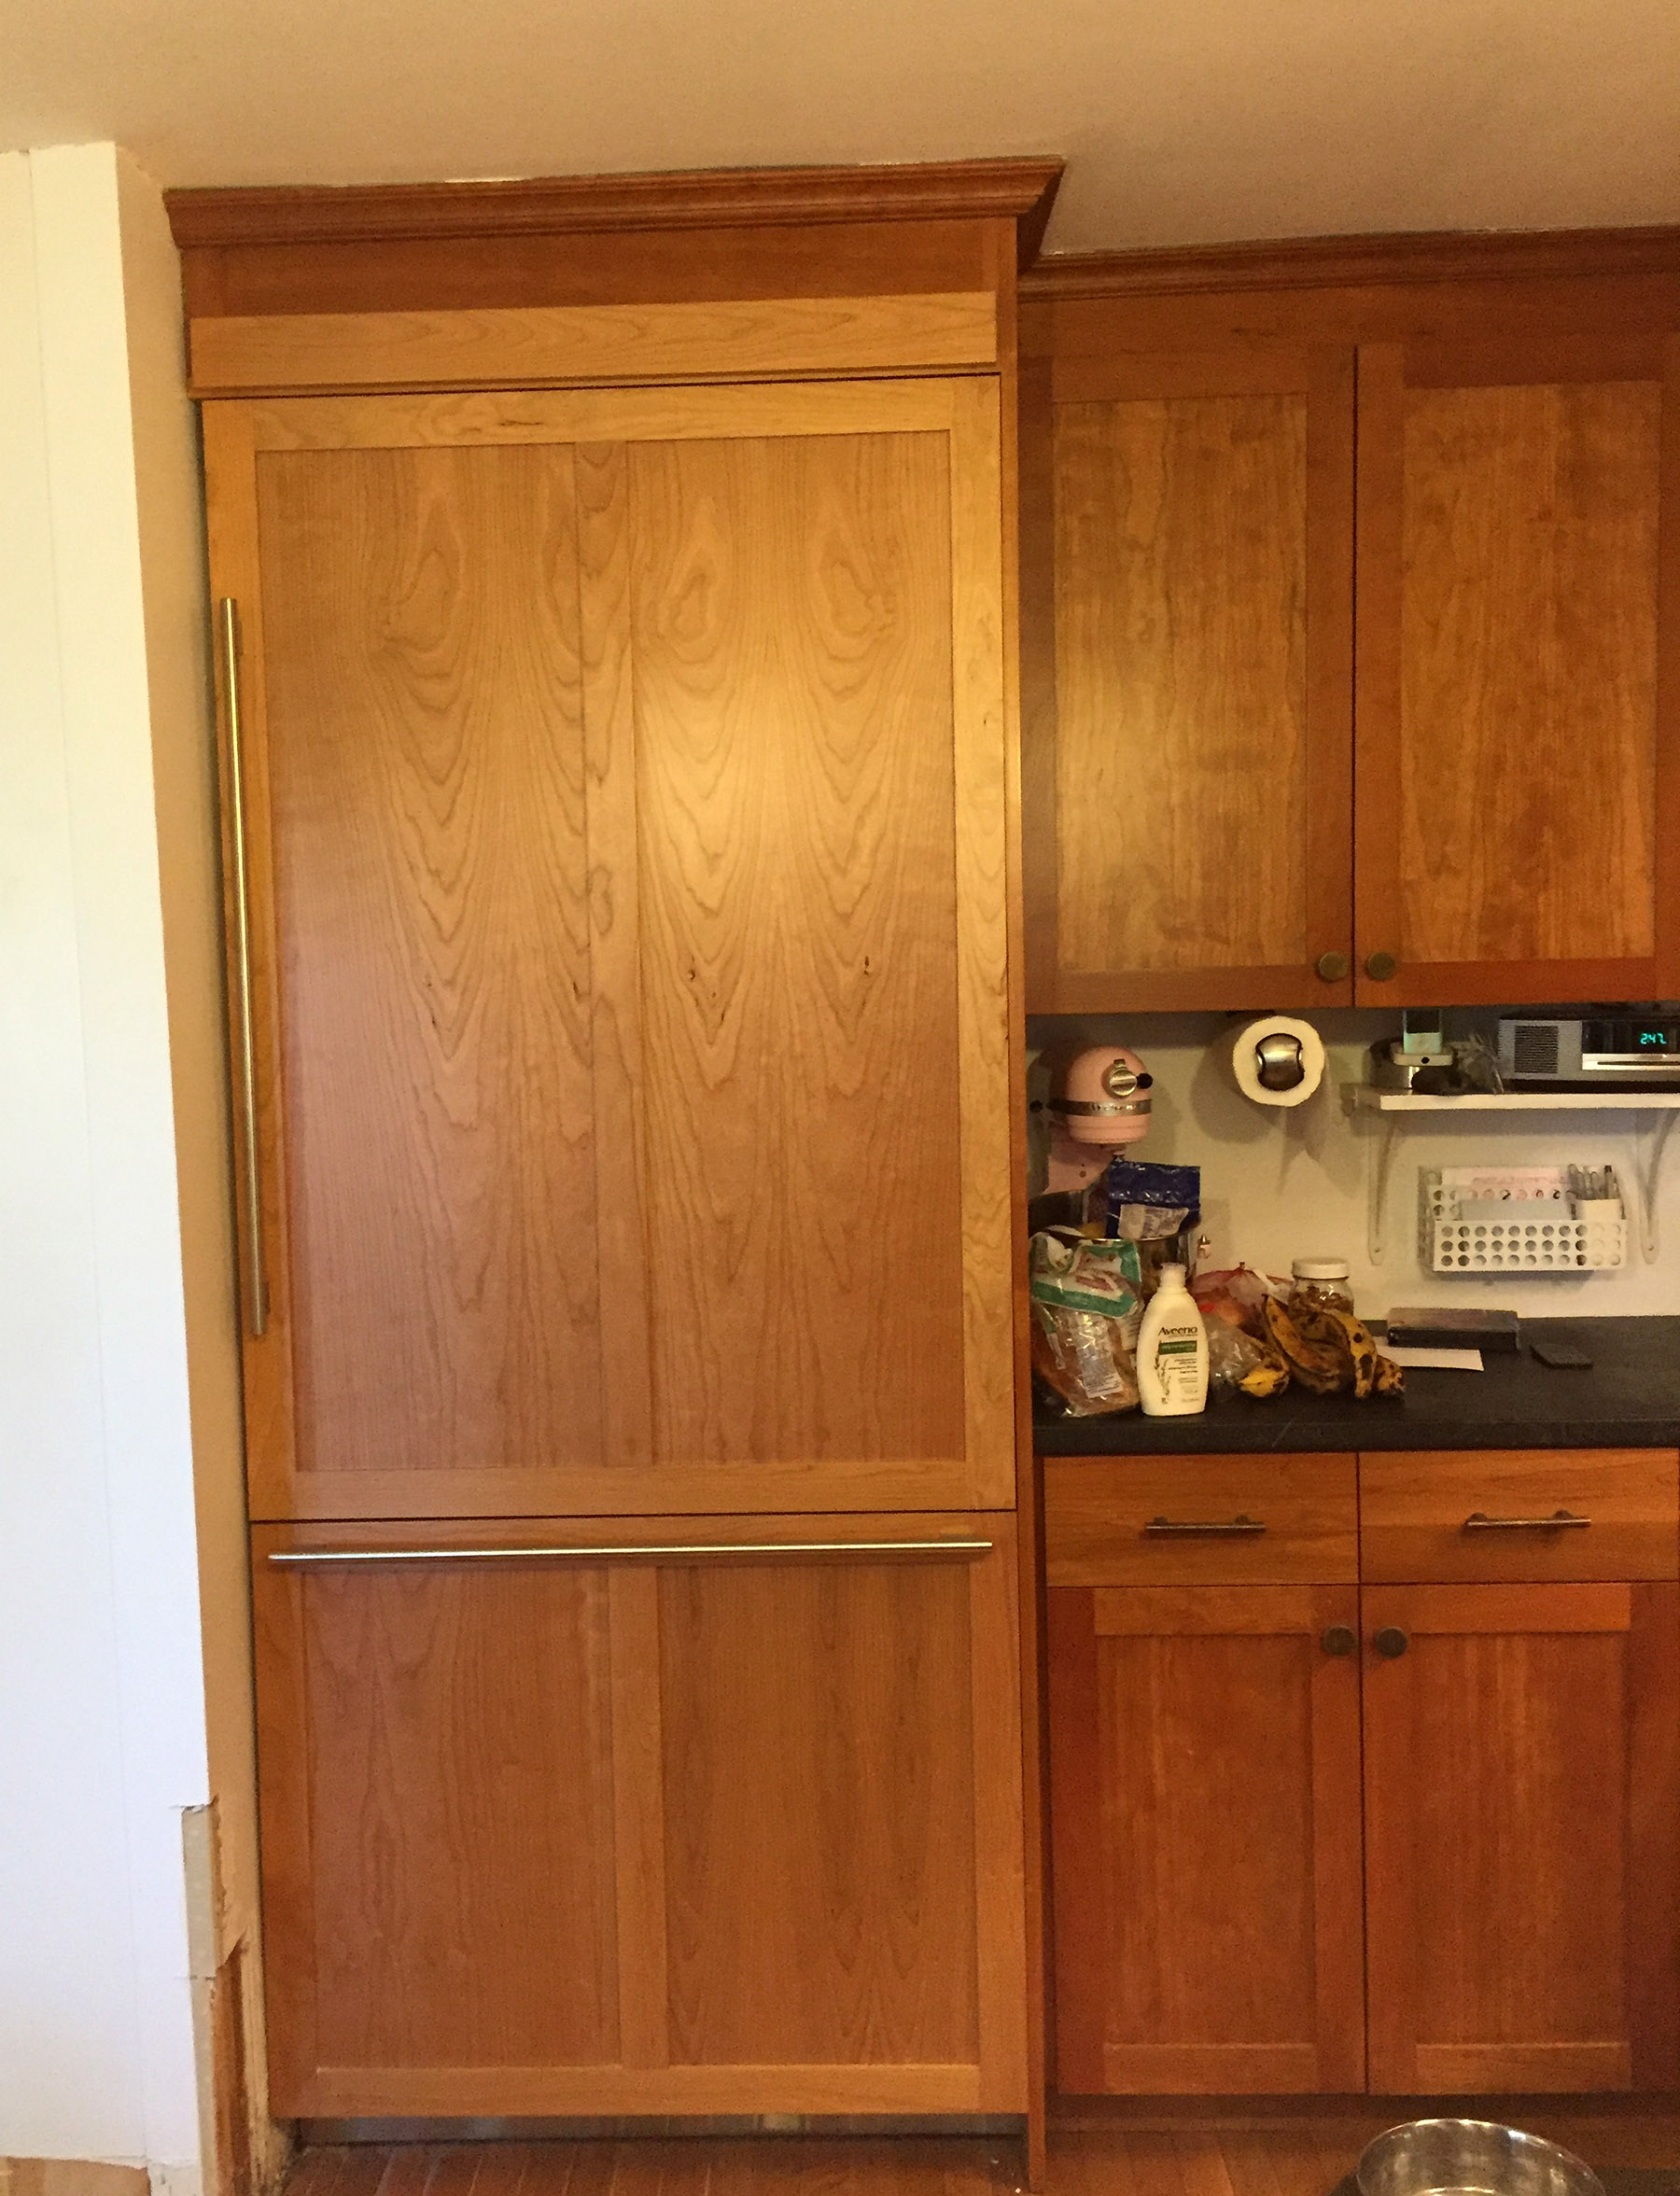 NEW: Thermodore 36: single door; custom panels to match my cherry wood cabinets, SubZero handles (Thermodore handles are really bulky and unattractive)